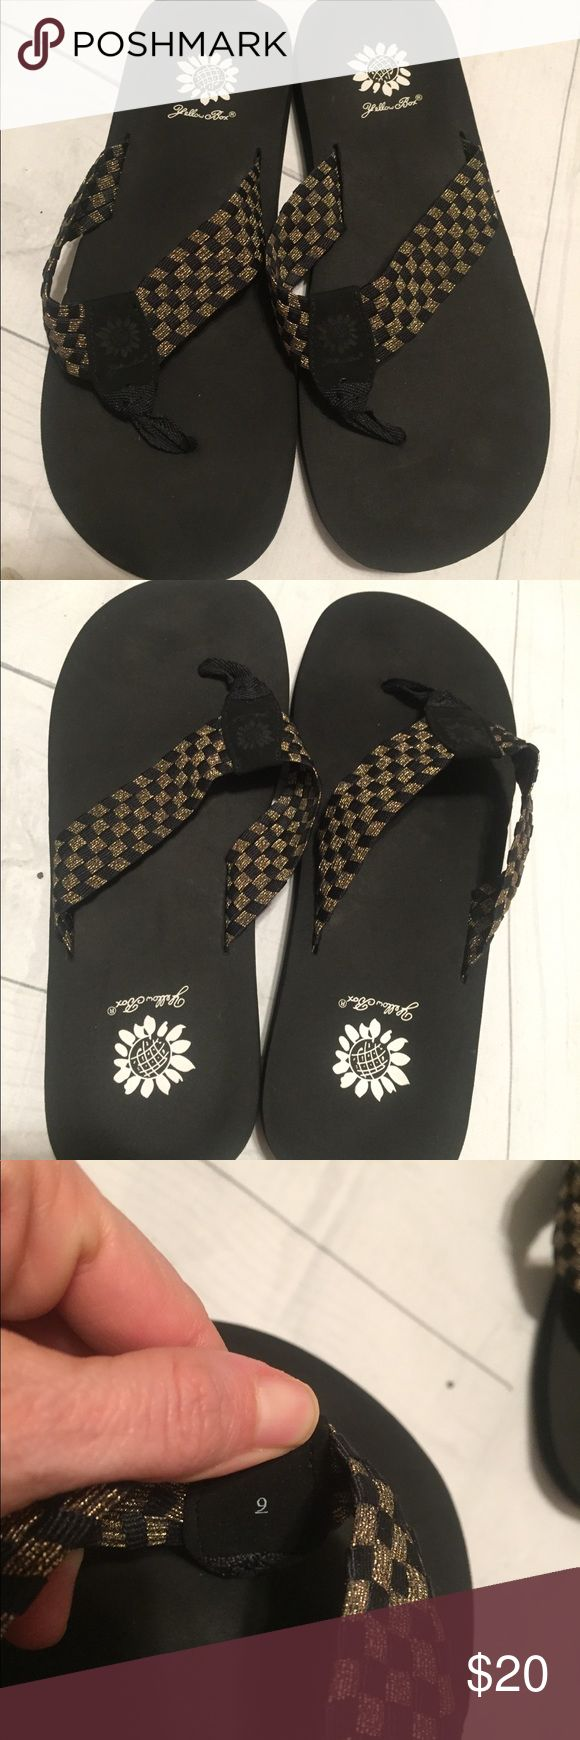 Yellow box flip flops 9 Yellow box flip flops 9. In good used condition. Black gold. Yellow Box Shoes Sandals